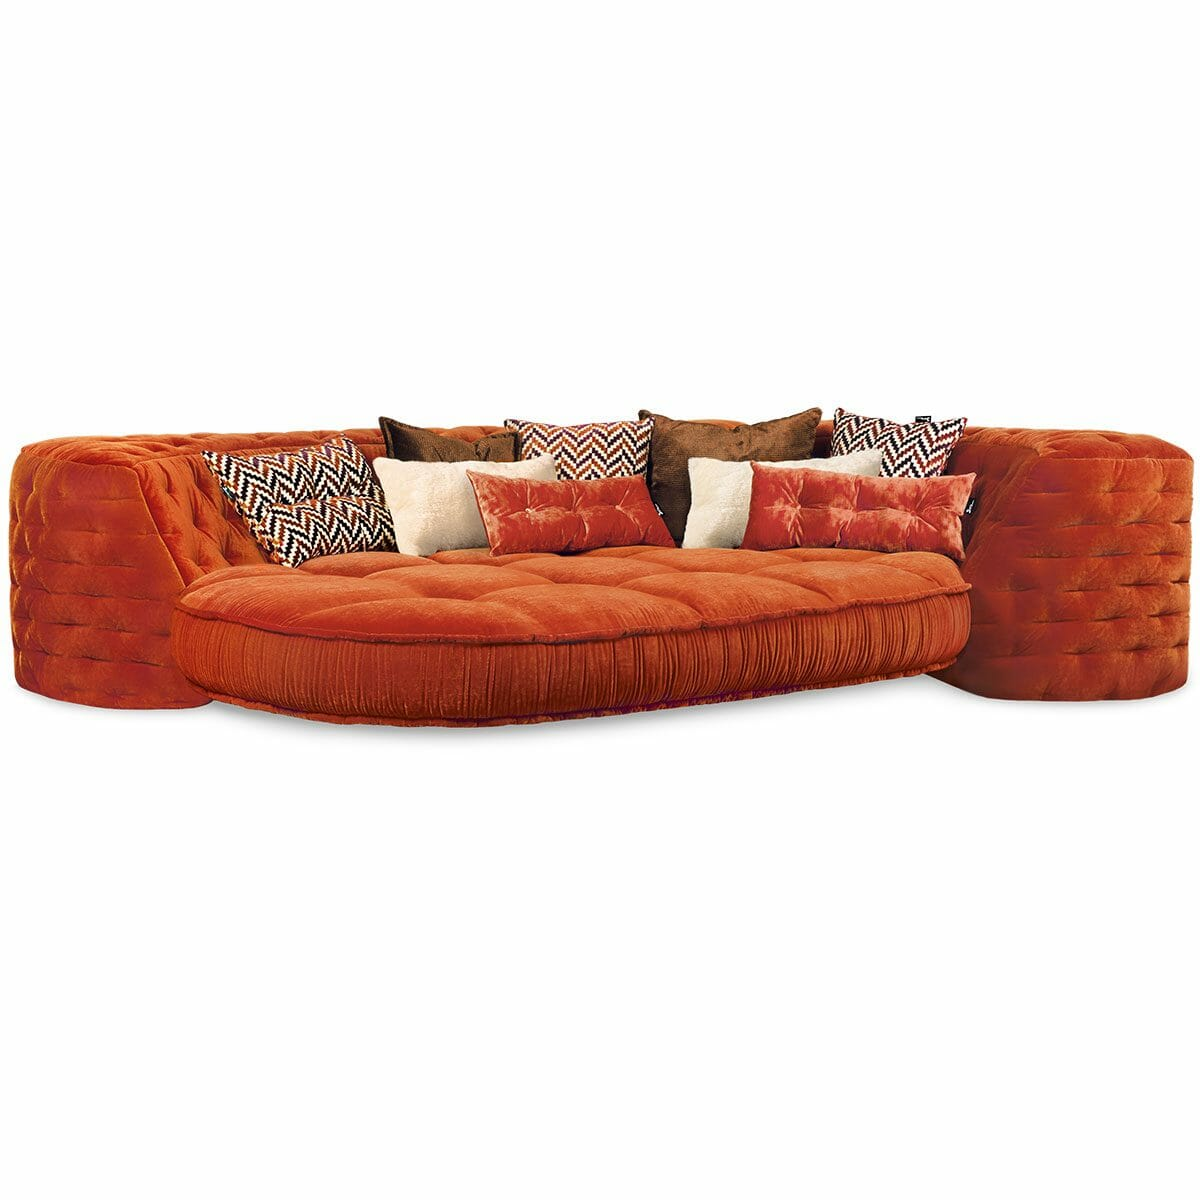 Bretz SOFA ECKBANK Z117re in kupfer-orange